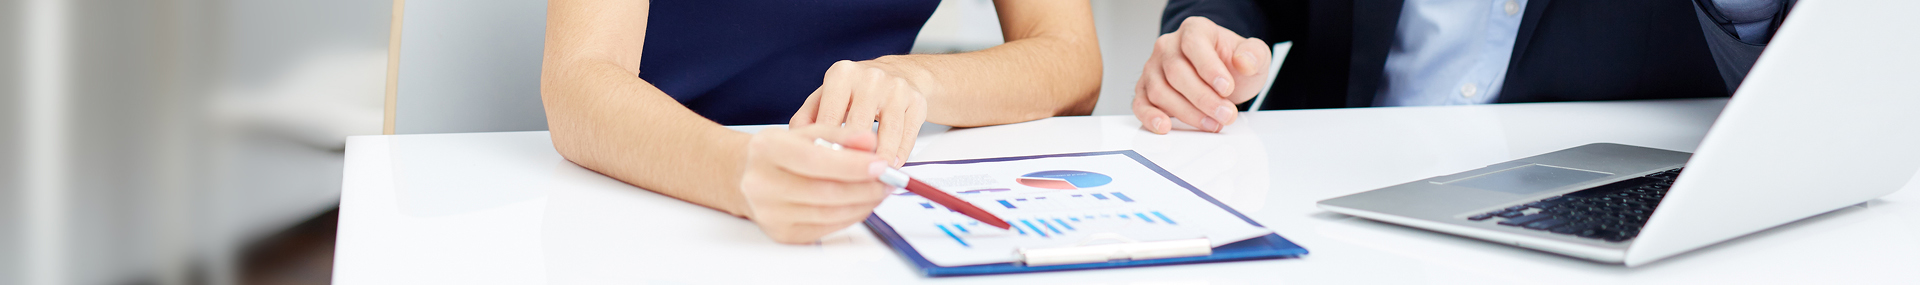 Professional woman and man review statistical figures together